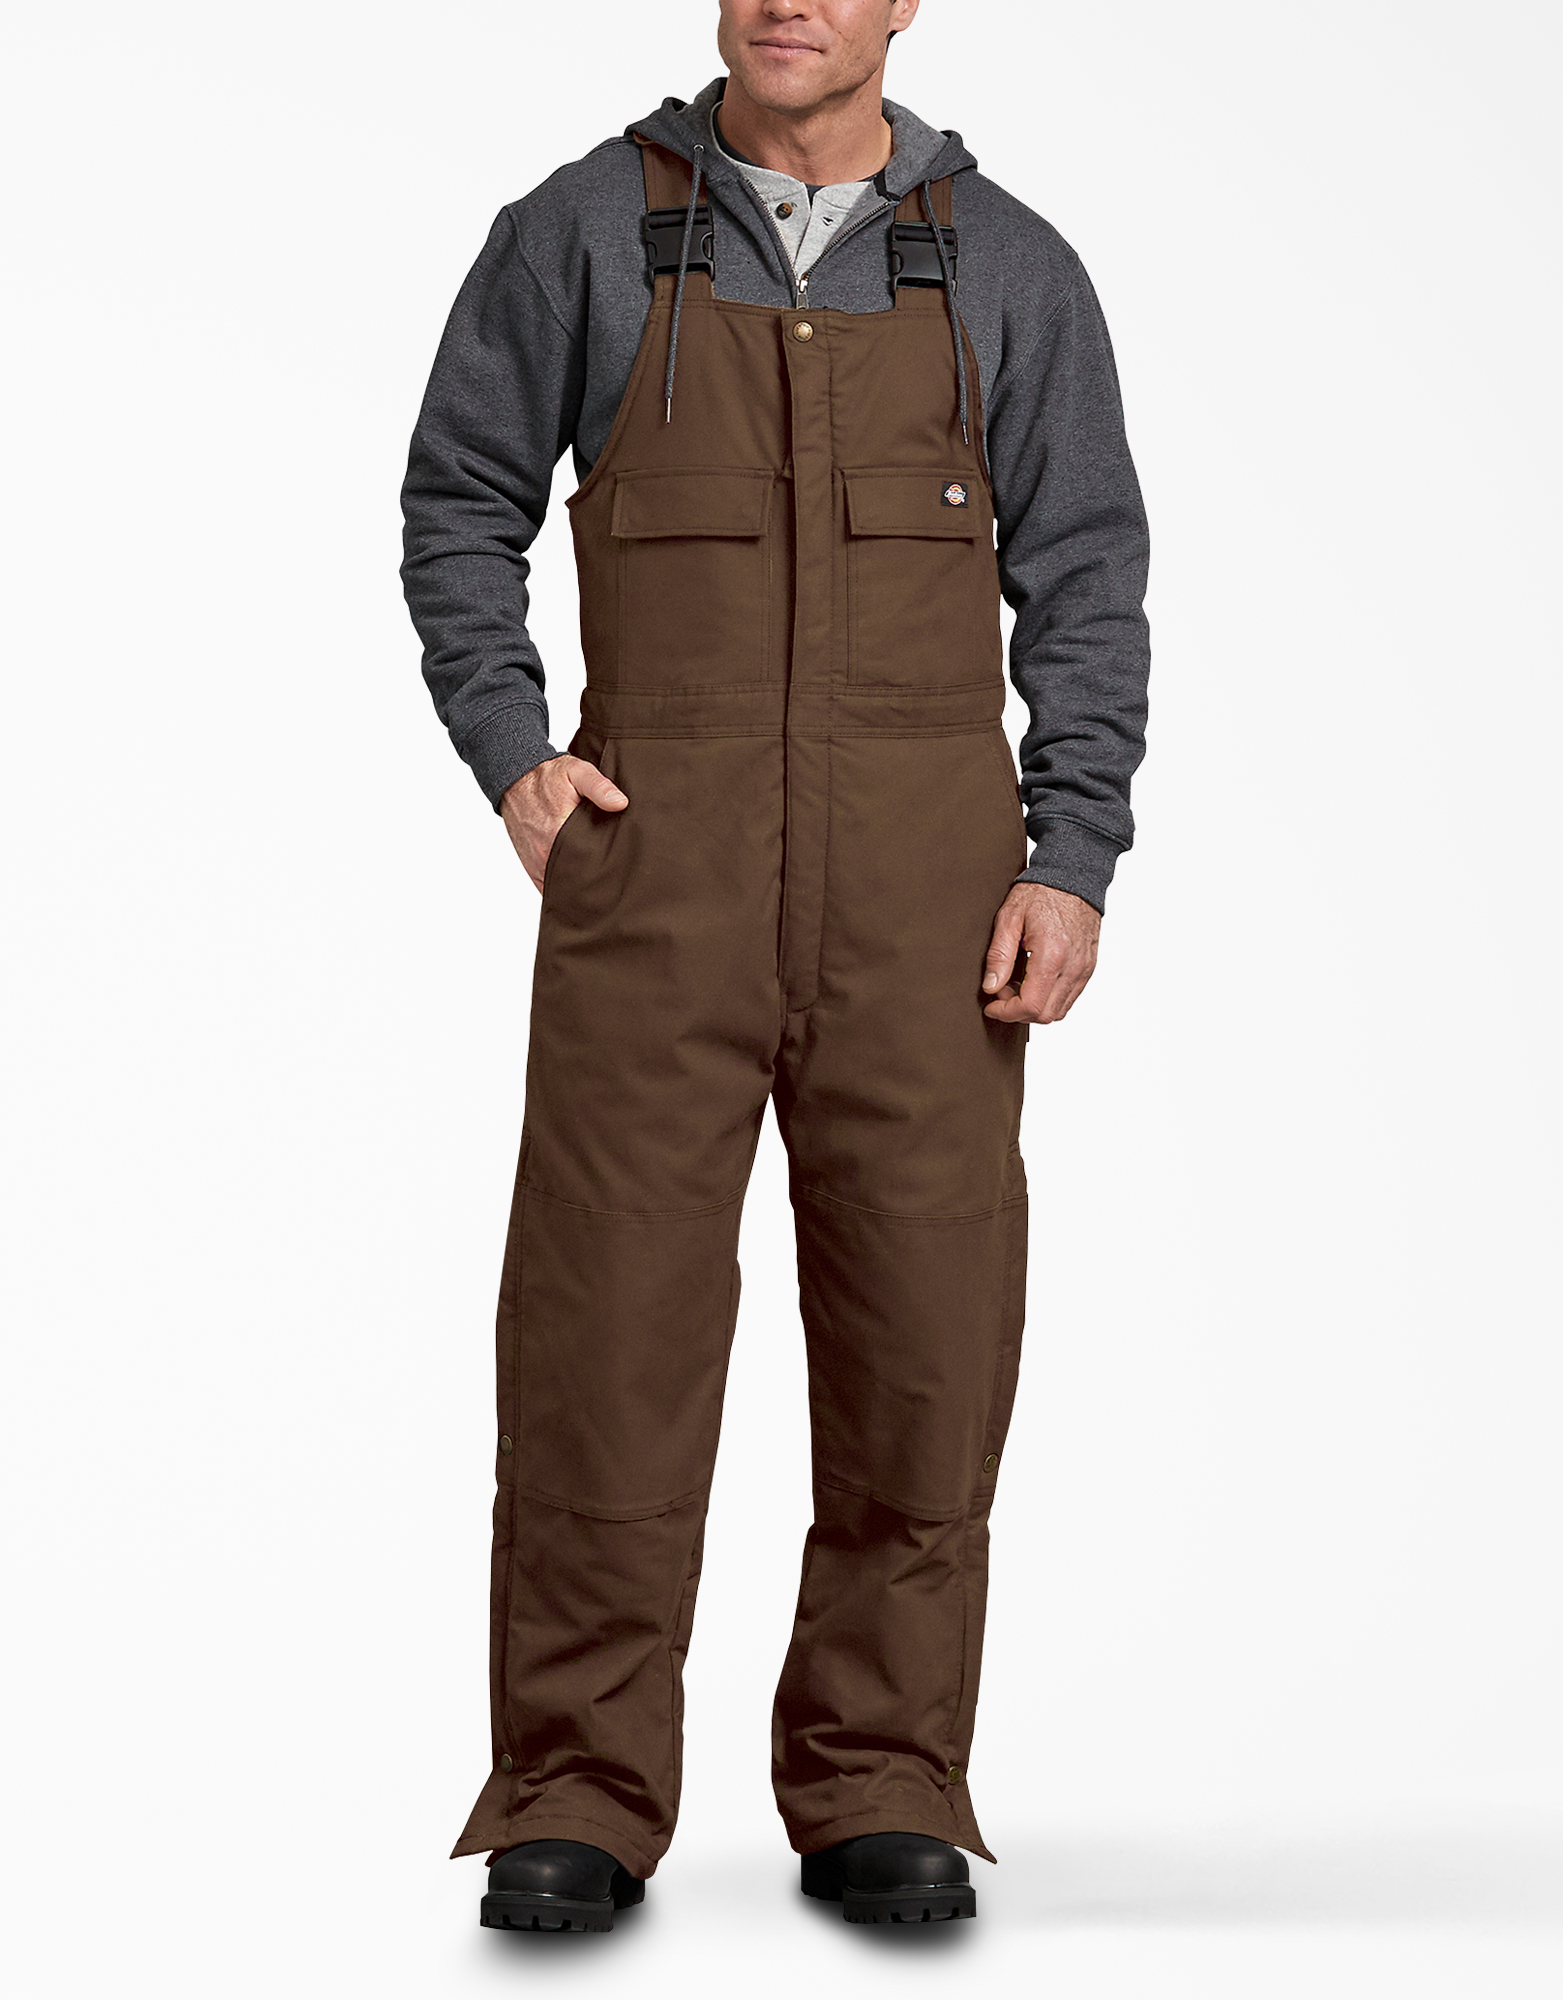 FLEX Sanded Duck Insulated Bib Overalls - Timber Brown (TB)